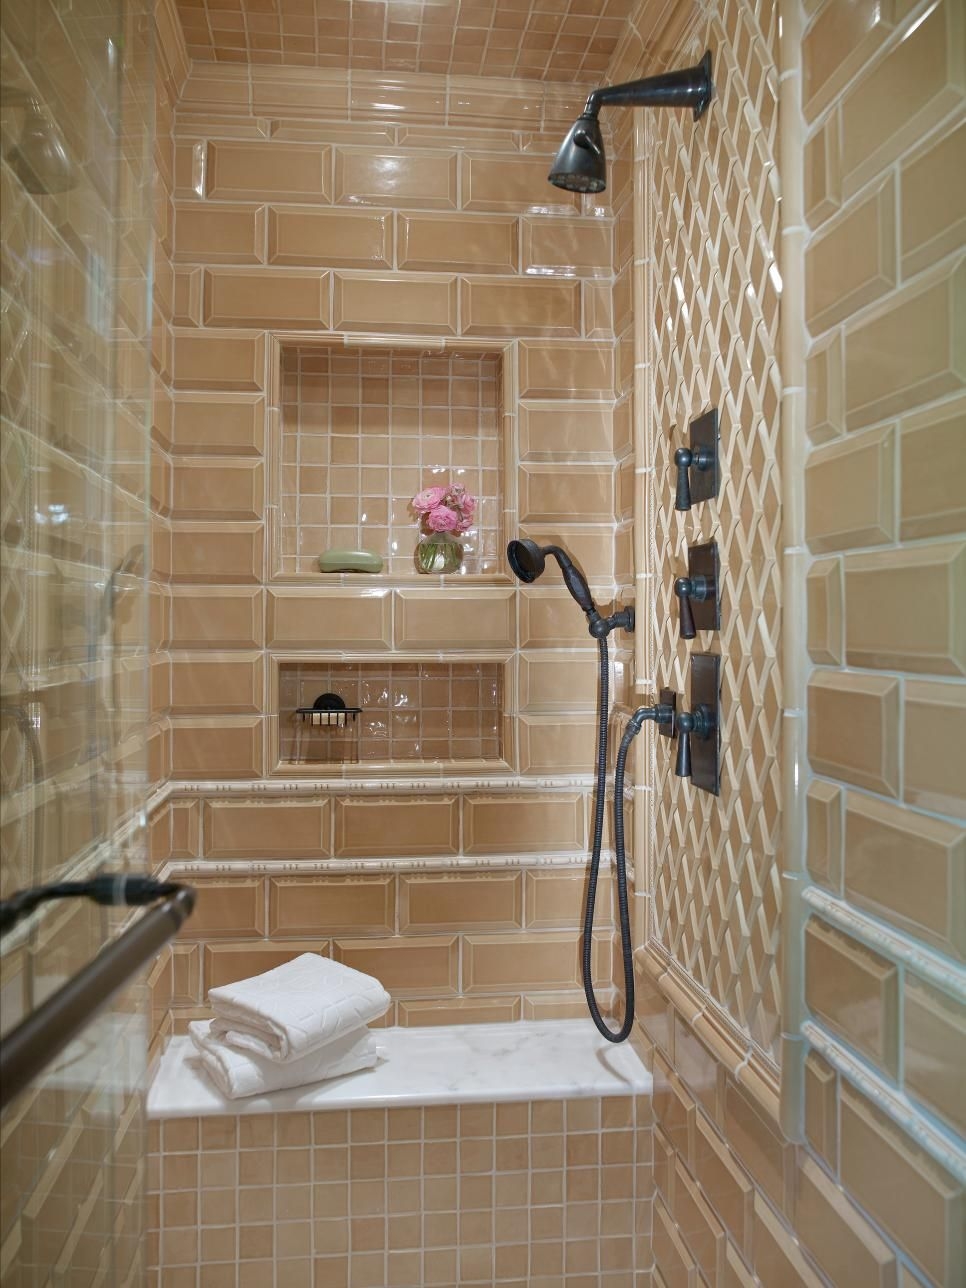 Terra cotta-colored glass tiles line the inside of this enclosed ...